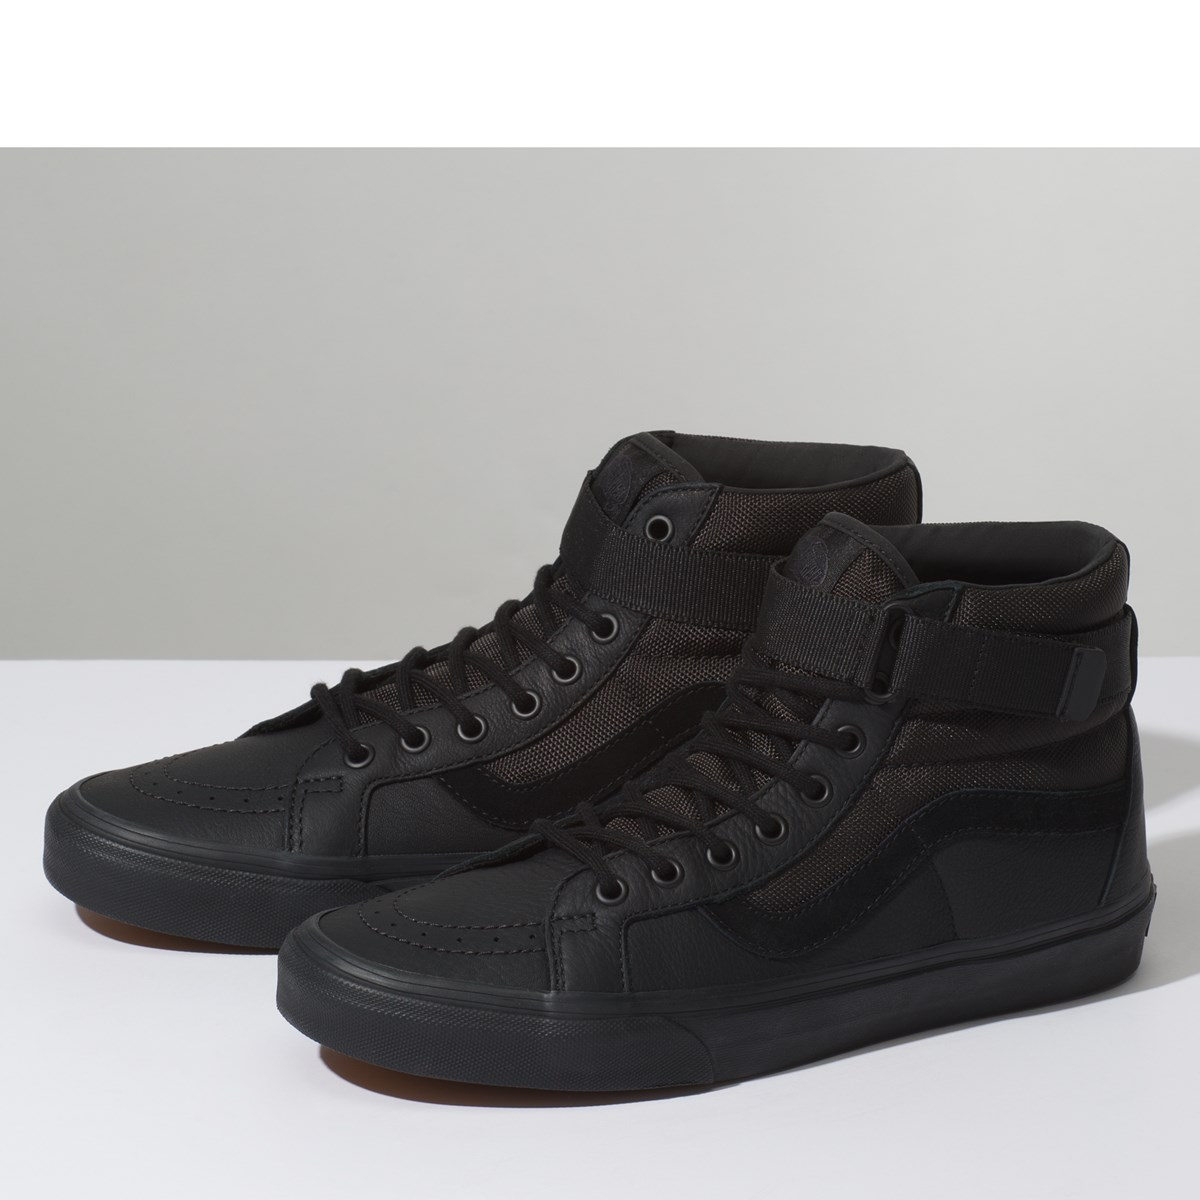 Men's SK8-Hi Reissue Strap Sneakers in Black